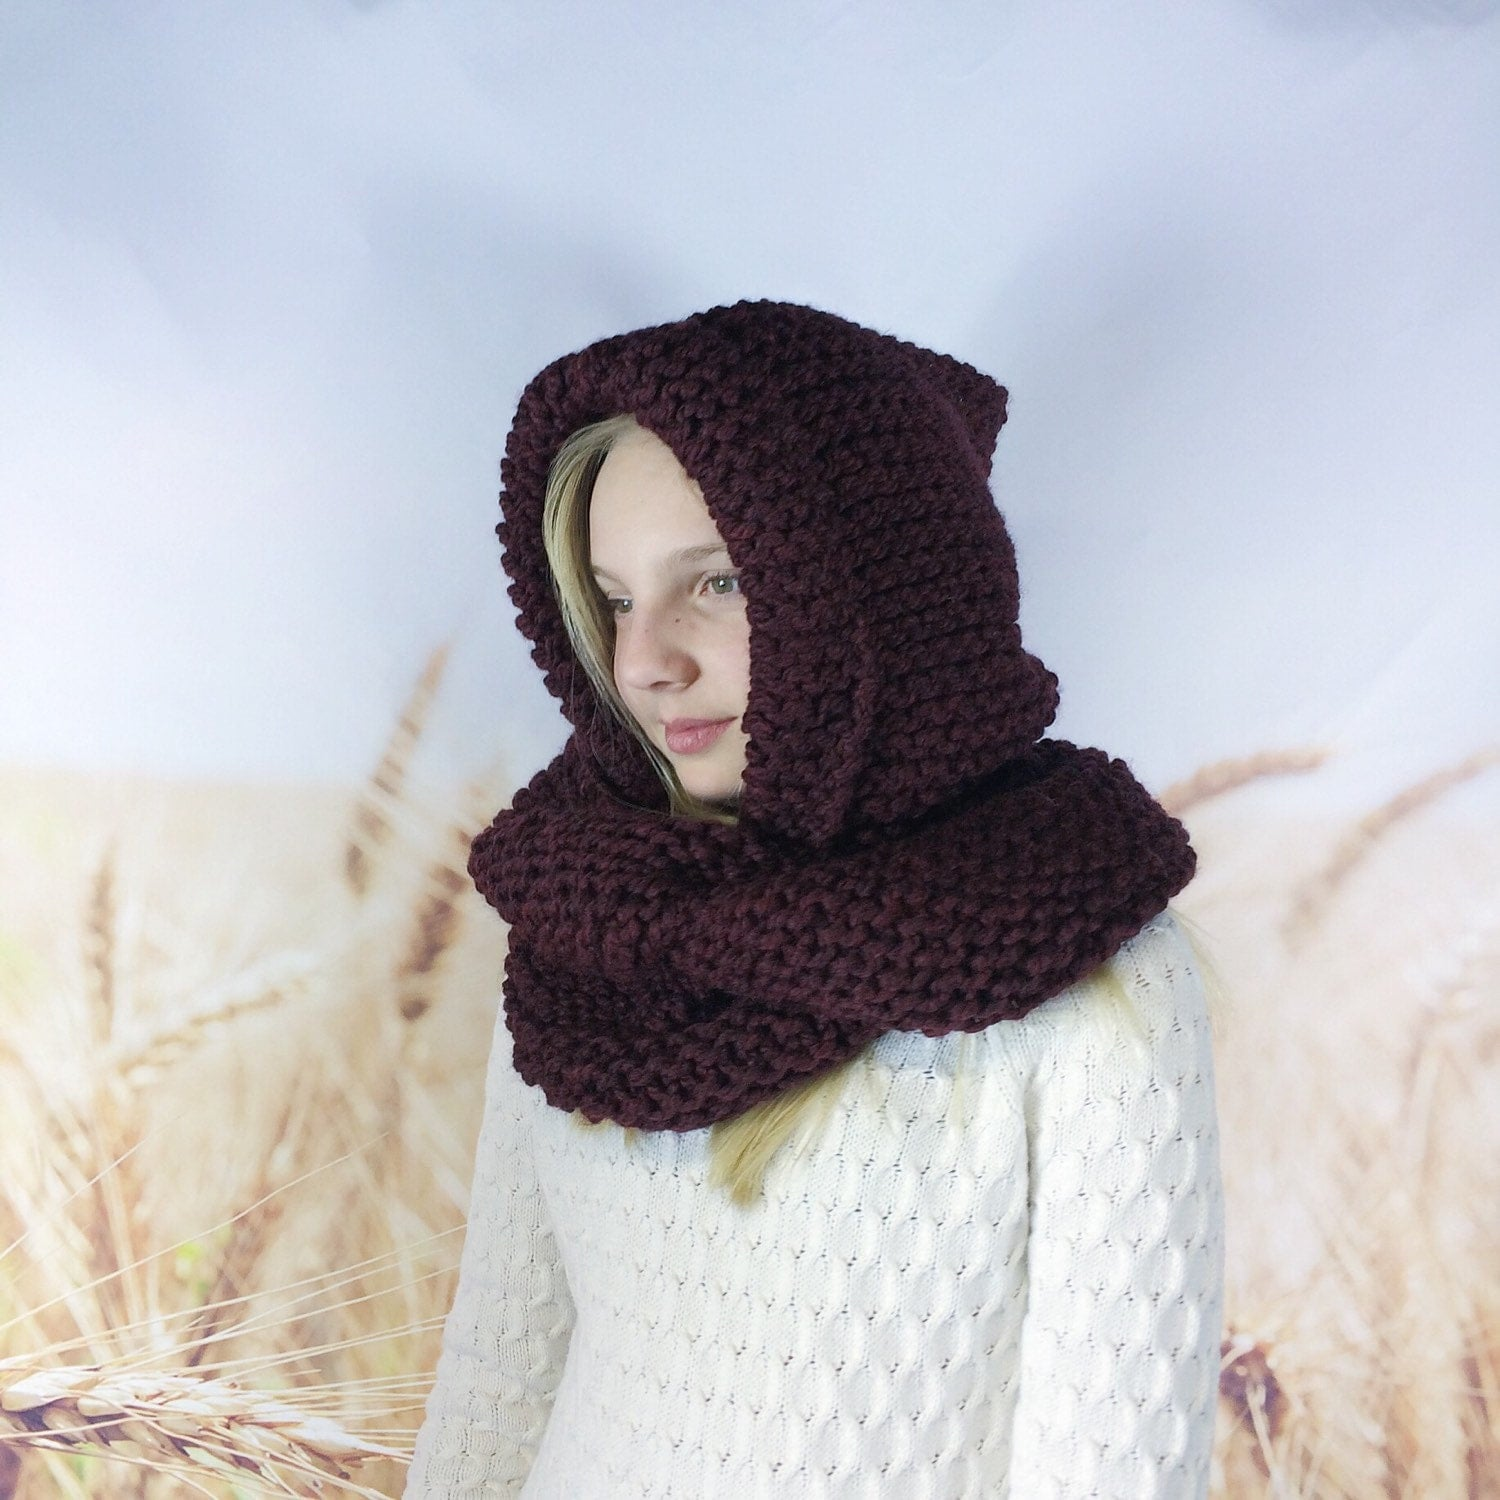 Kids Hooded Infinity Scarf, Hooded Cowl Scarf for Kids, Chunky Knit ...